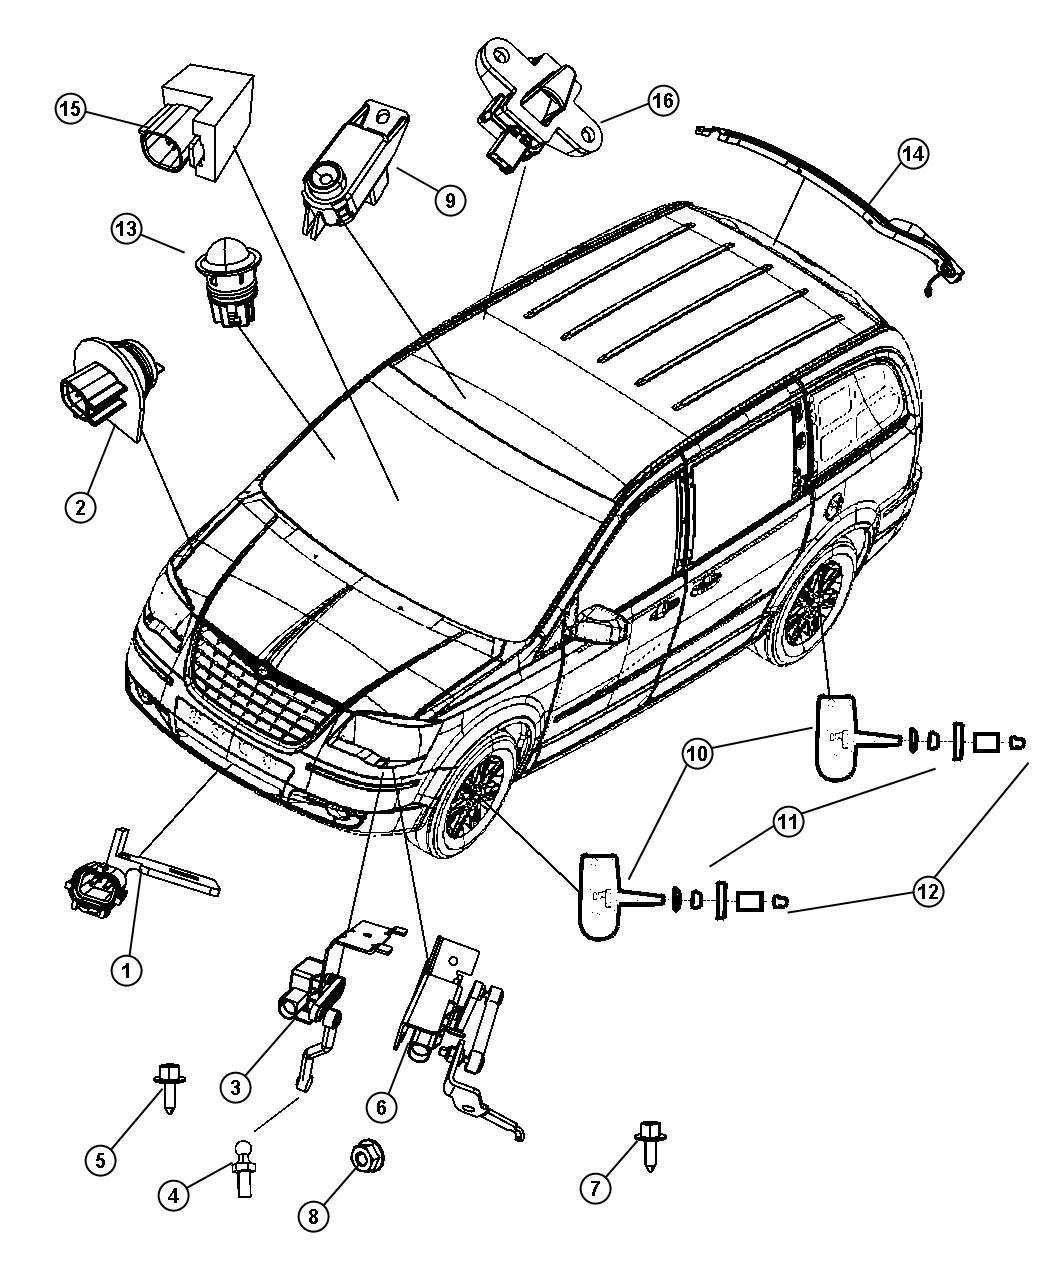 2002 chrysler town and country stereo wiring diagram free best GMC Tail Light Wiring Diagram wiring diagrams 2008 chrysler aspen wiring free engine image for user manual download chrysler town and